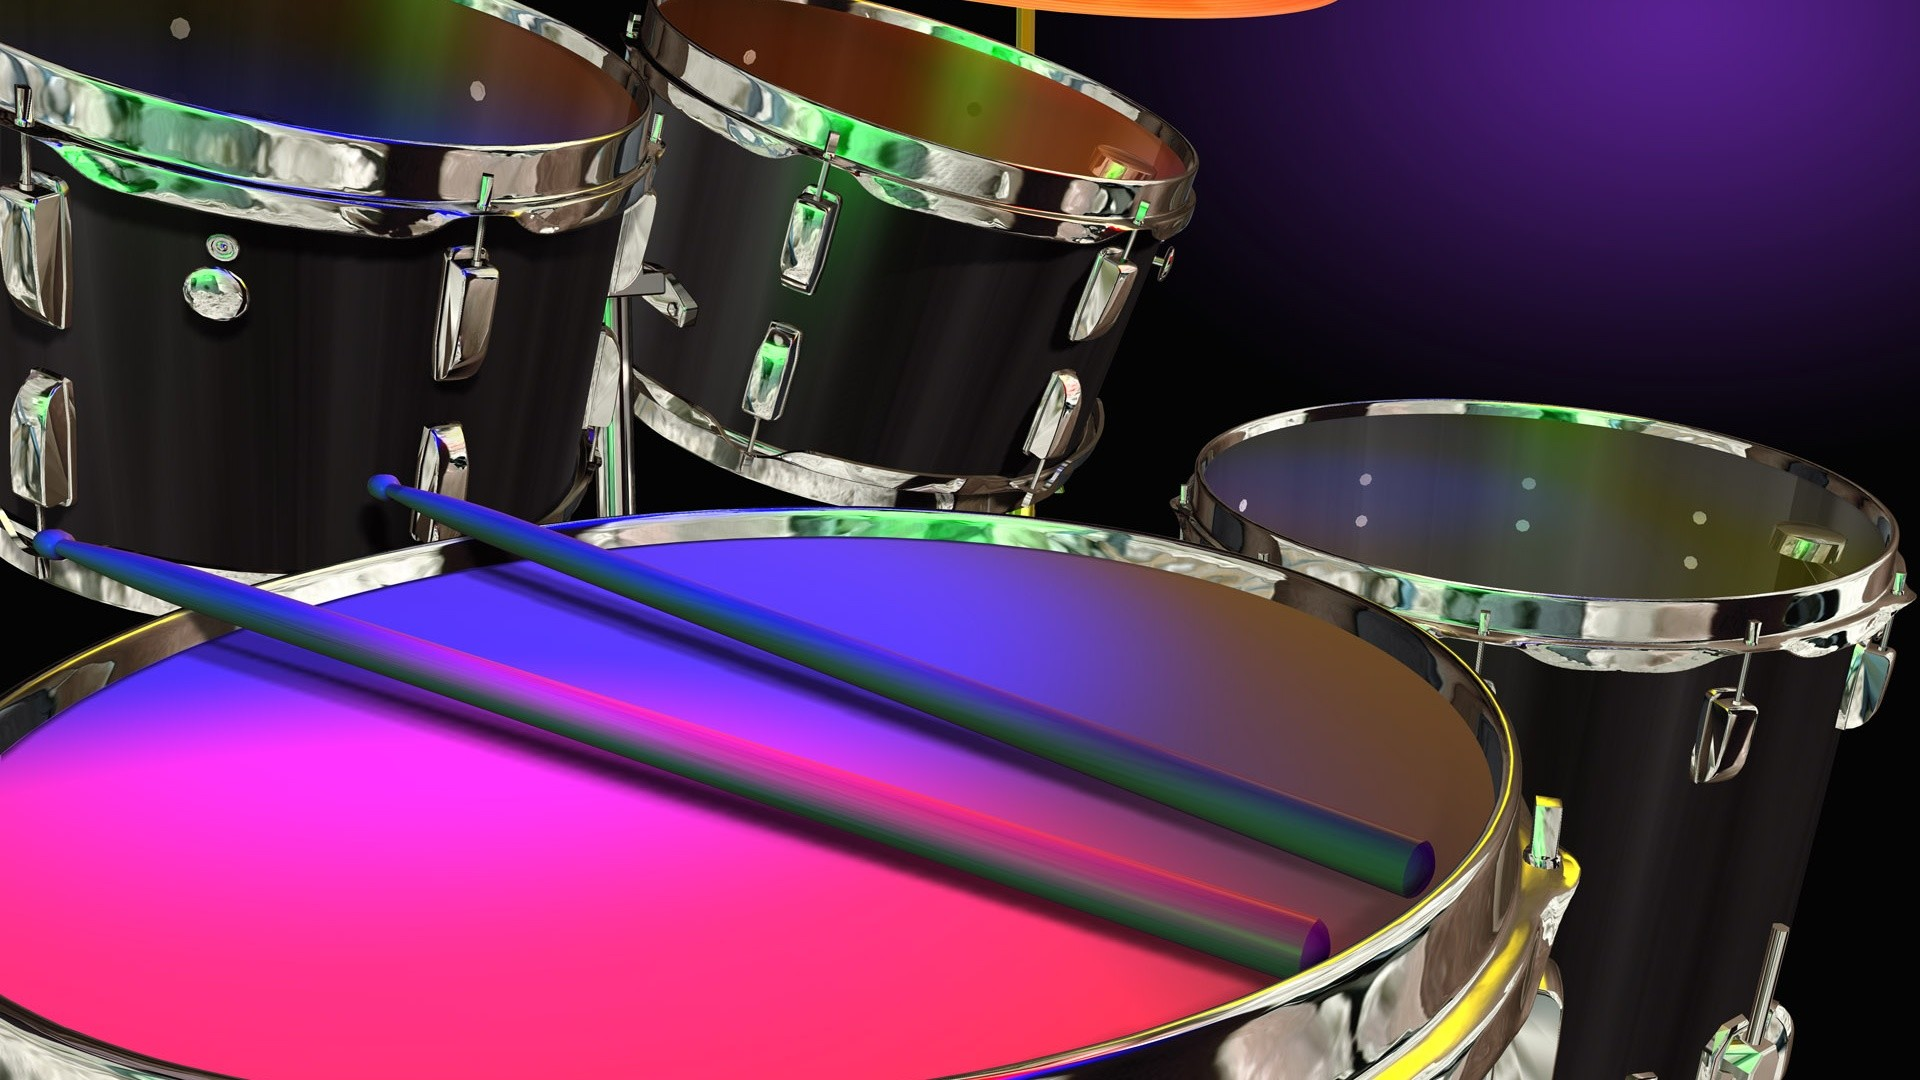 1920x1080  Drums in Color